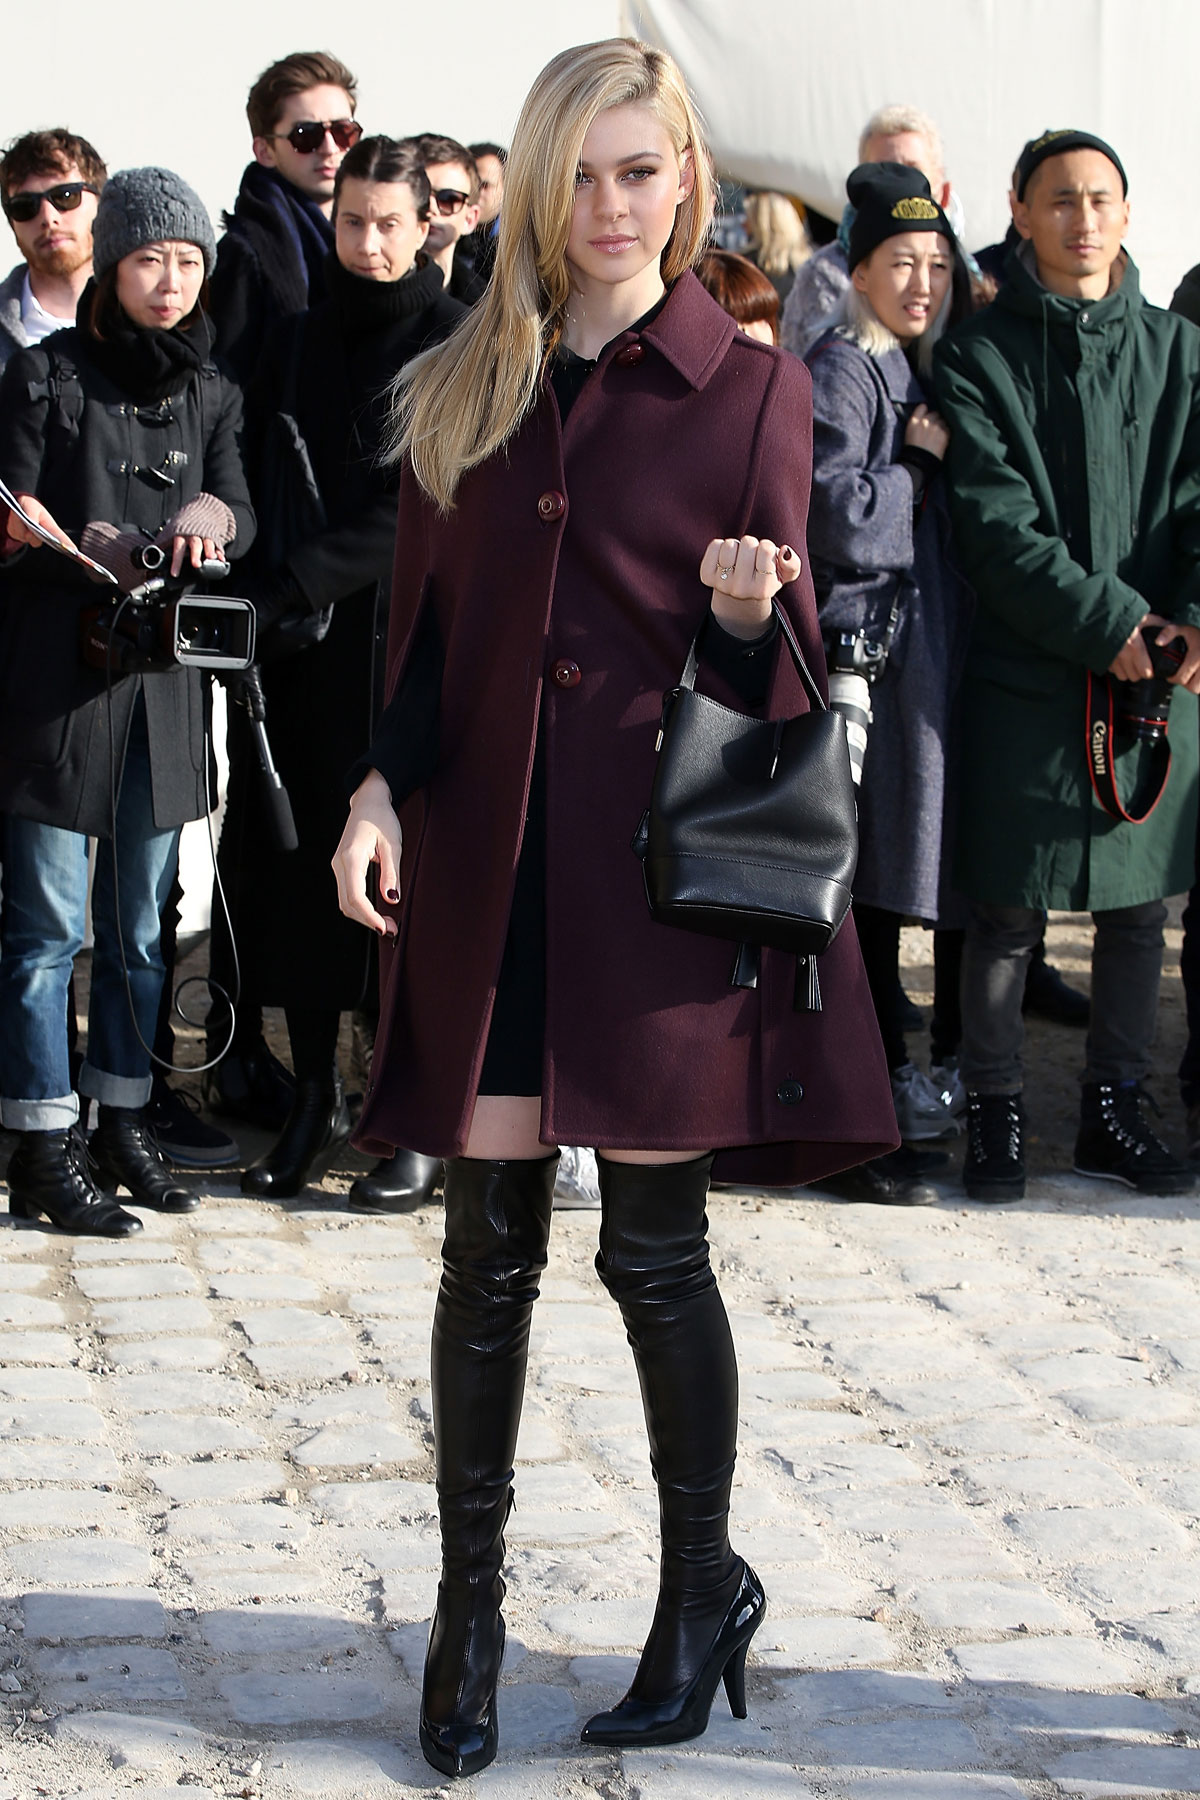 Nicola Peltz attends the Louis Vuitton show